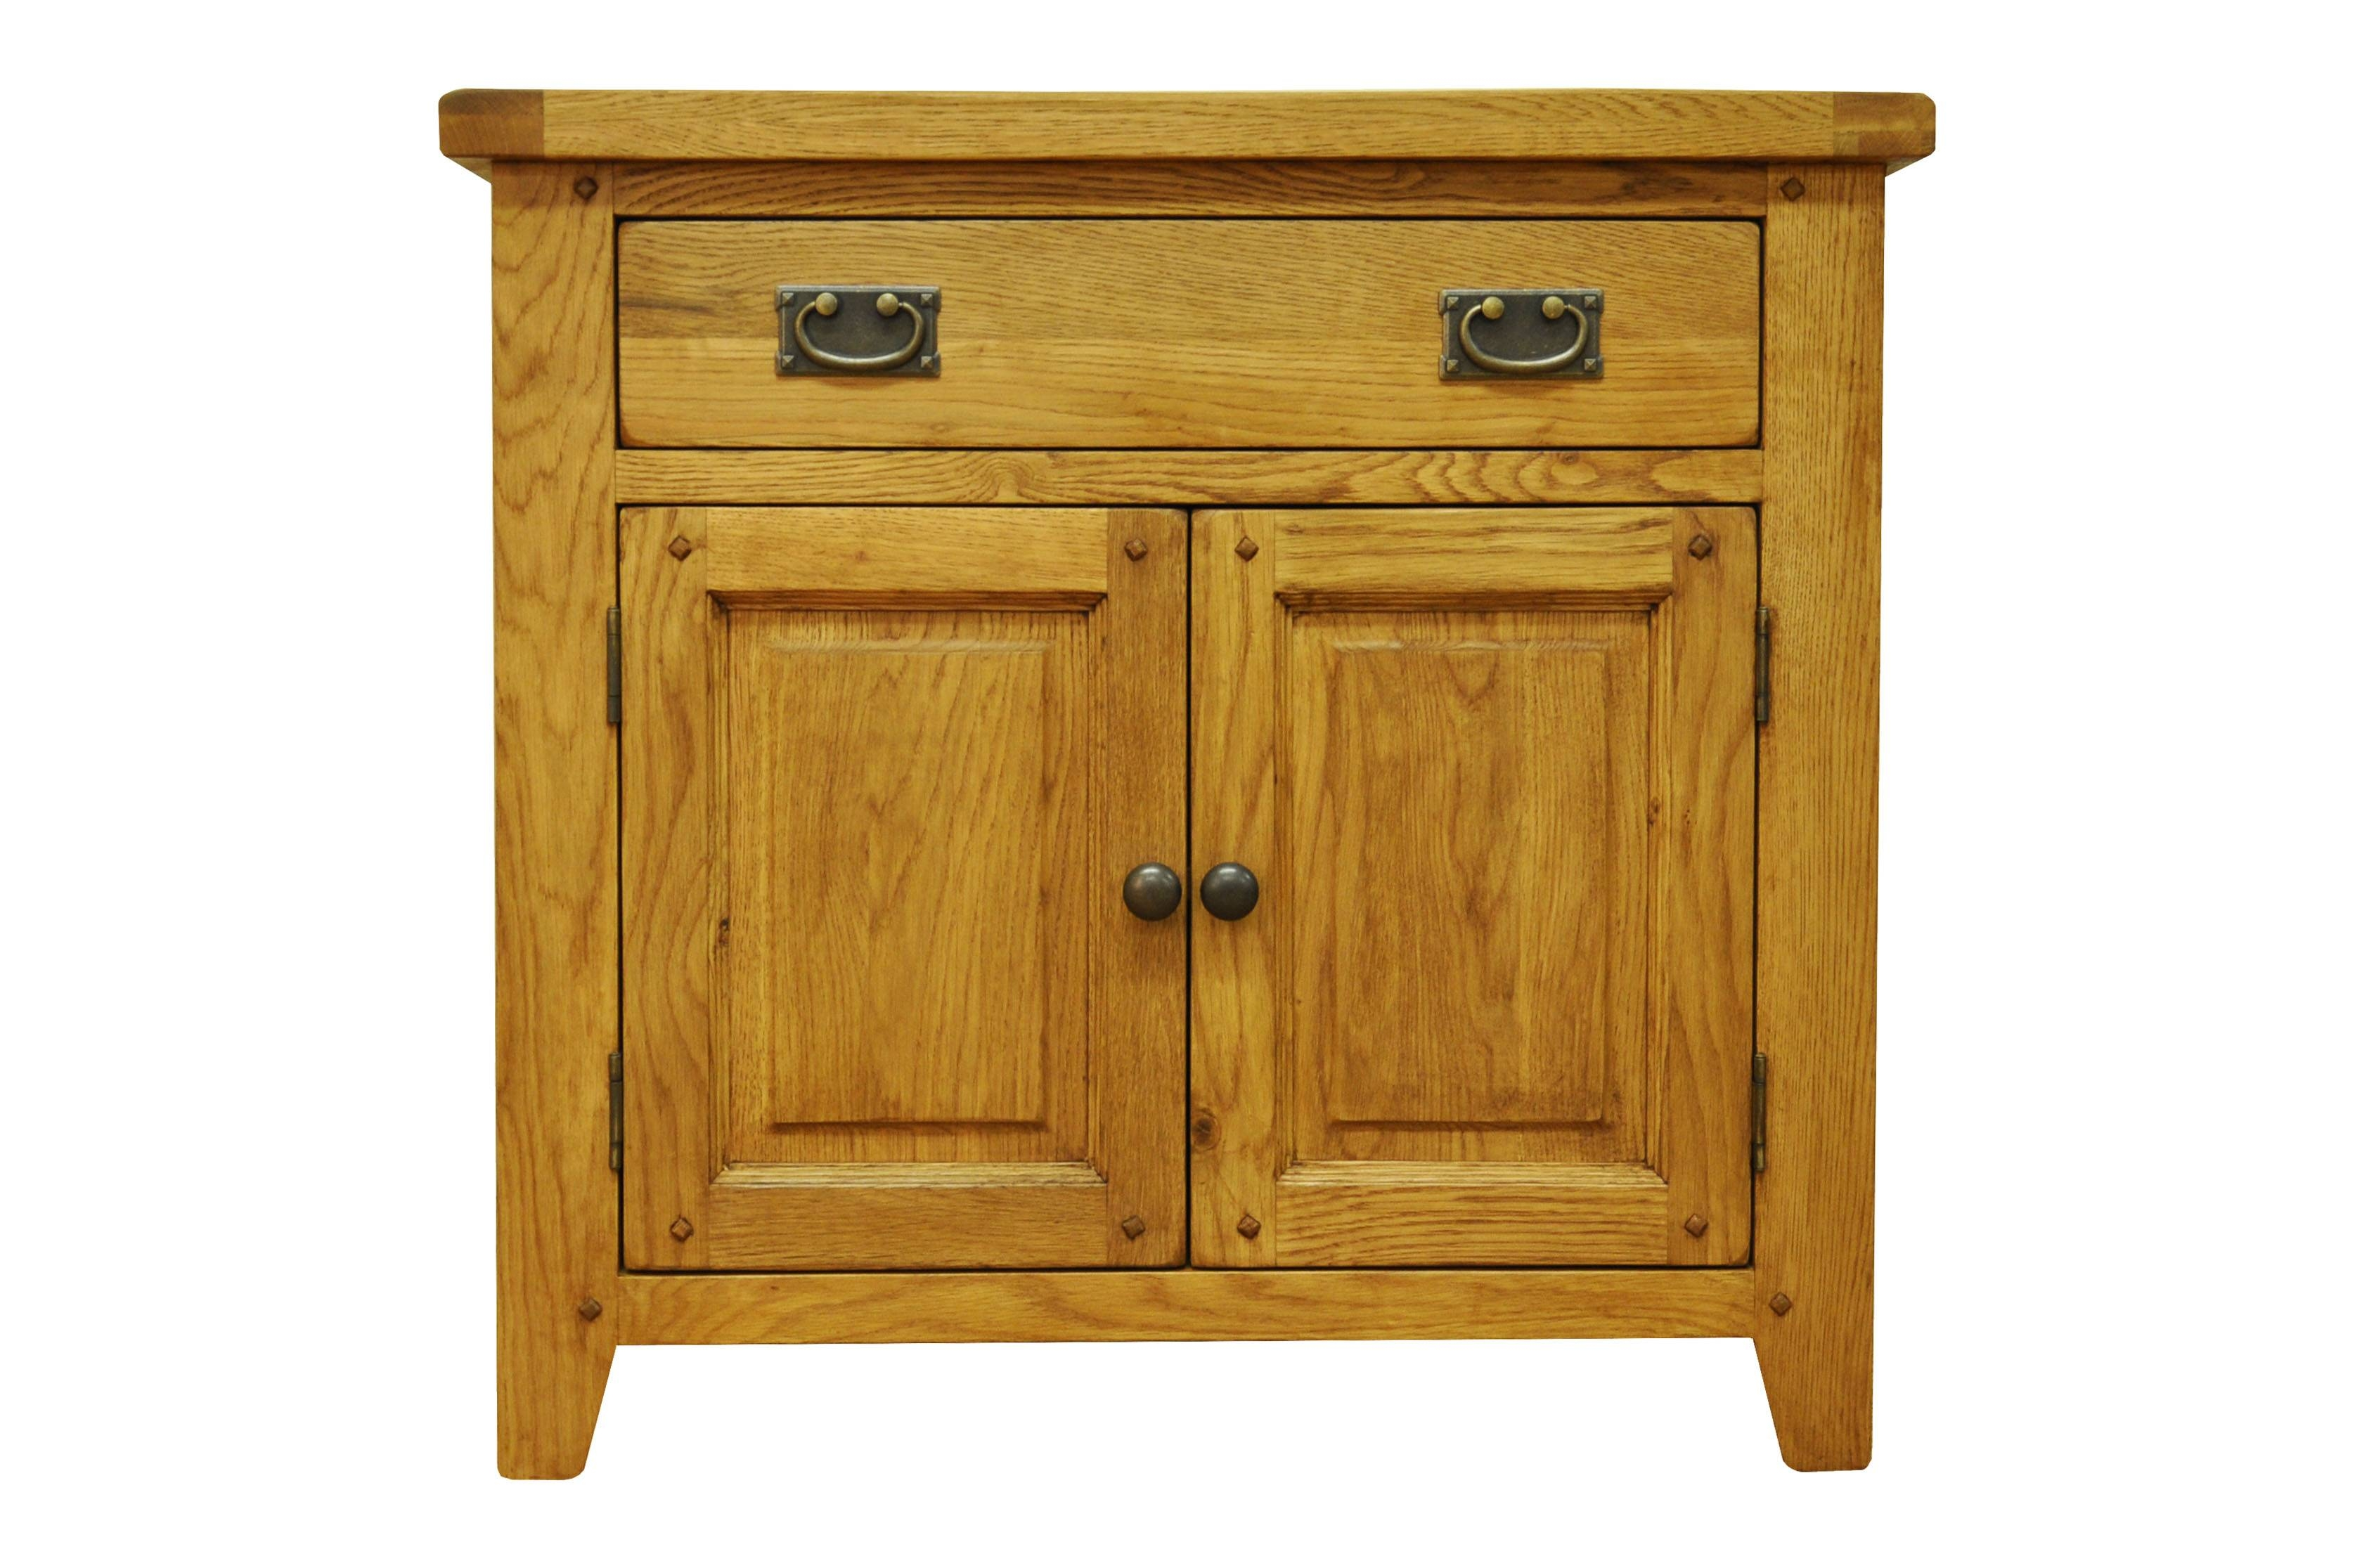 Oak Sideboards | Oak Furniture In Barrow In Furness intended for Fully Assembled Sideboards (Image 23 of 30)